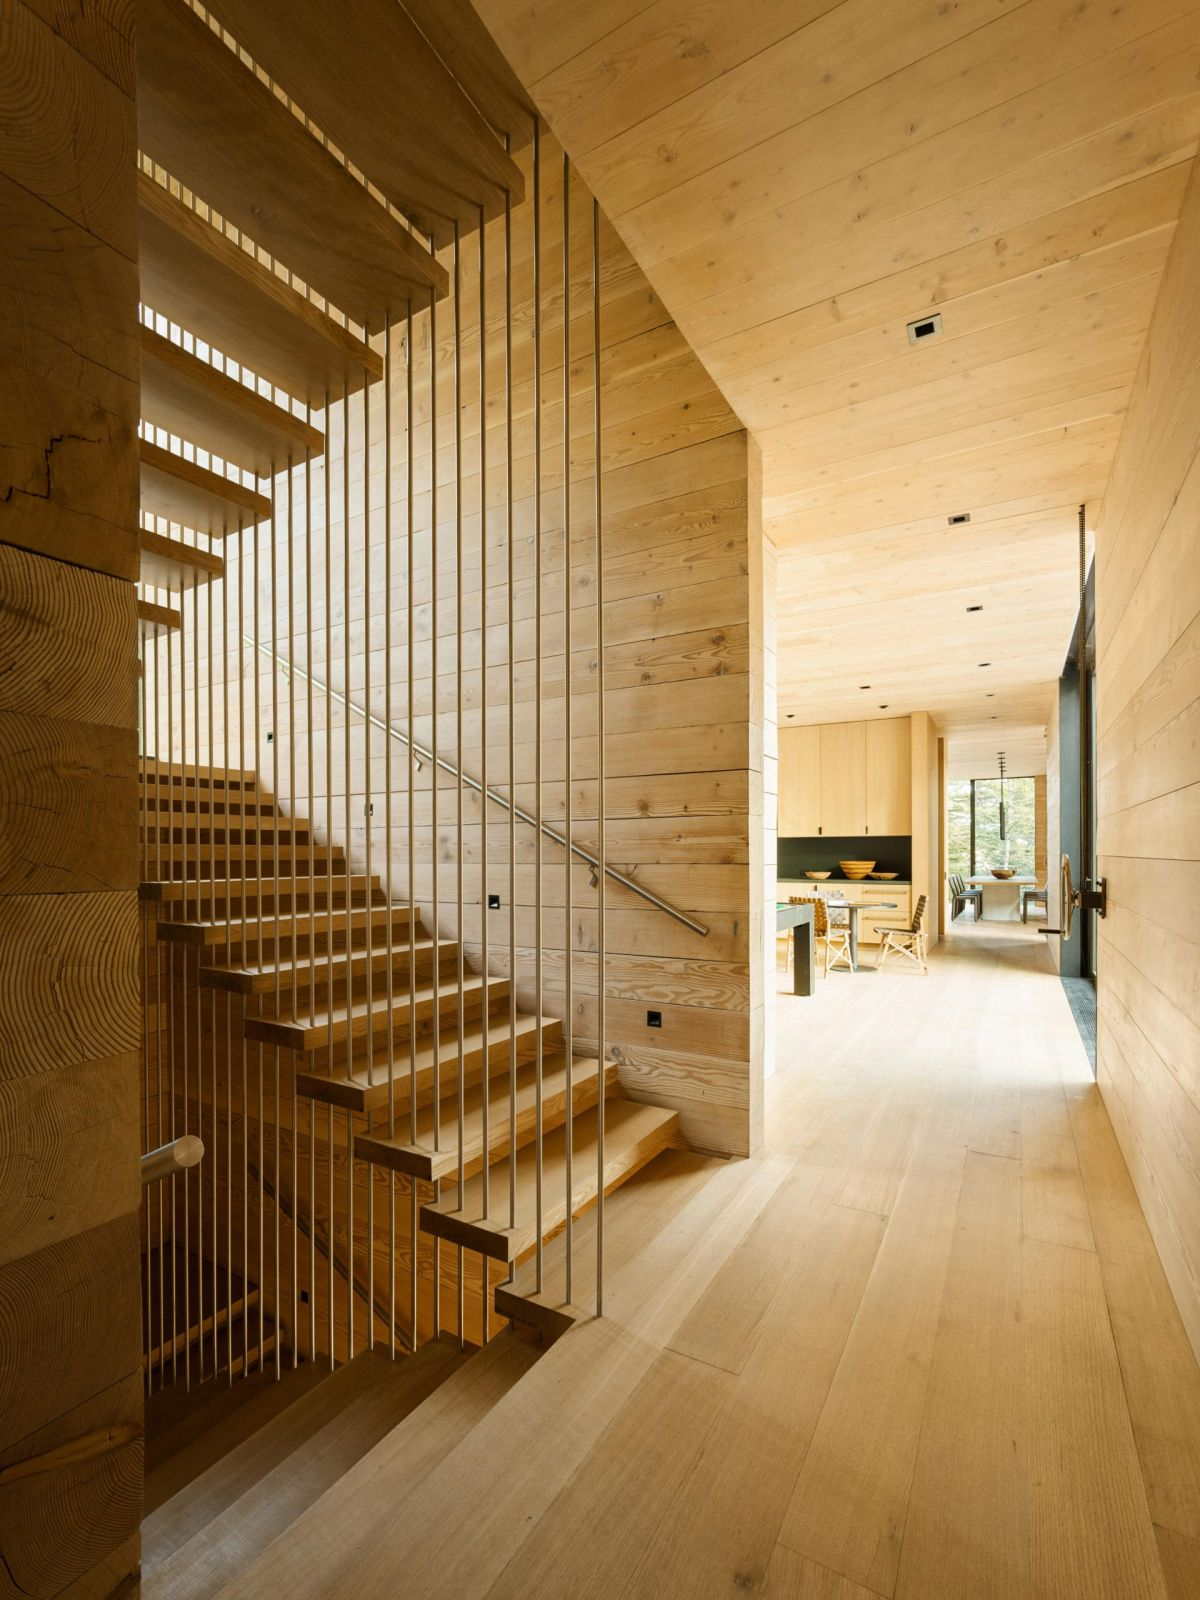 The floors are connected by a wooden staircase with thin metal rods as railings